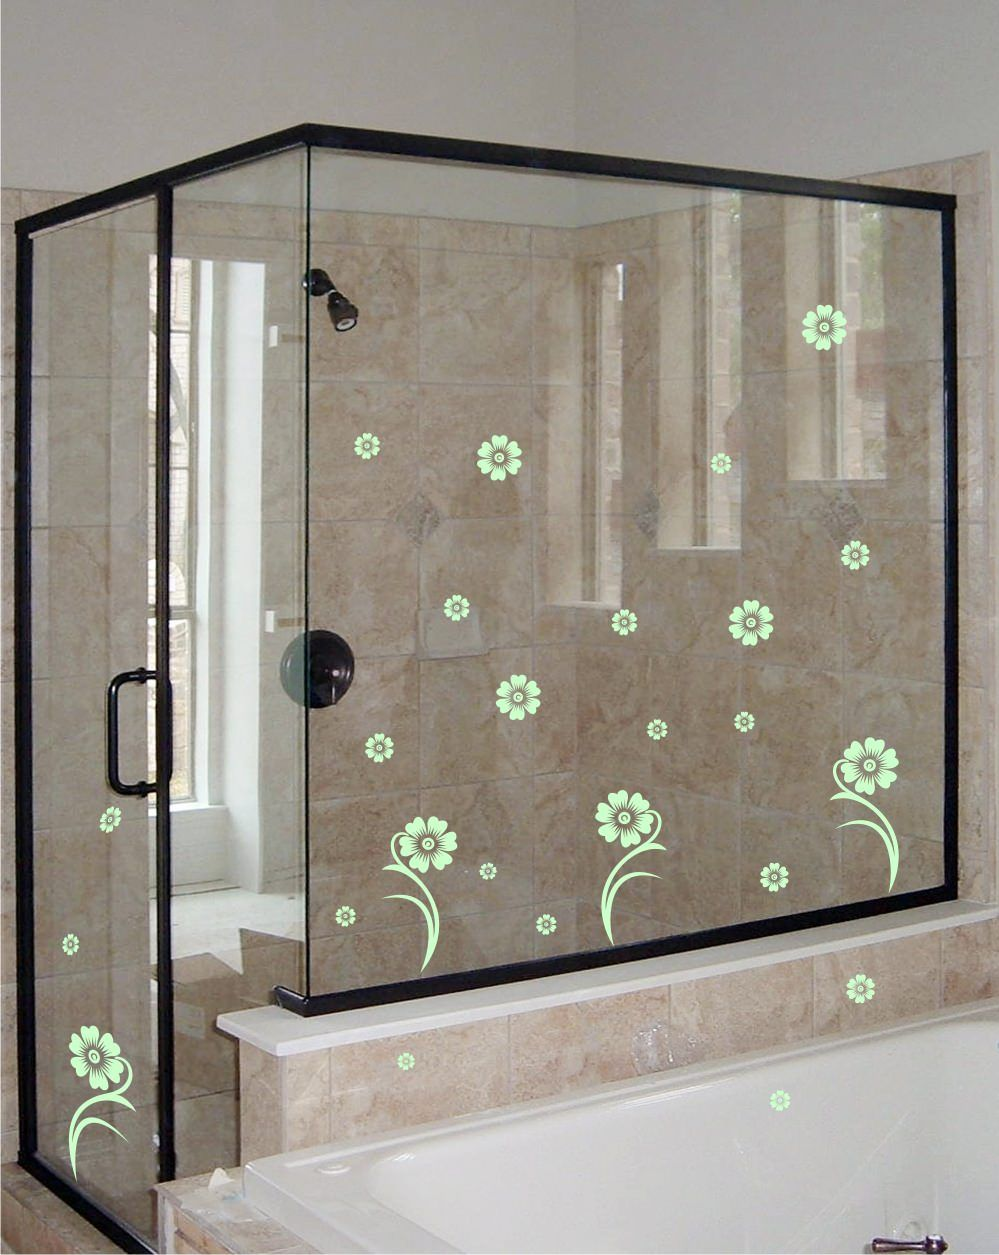 Shower door vinyl decal 28 prettify your shower door with this charming shower door vinyl